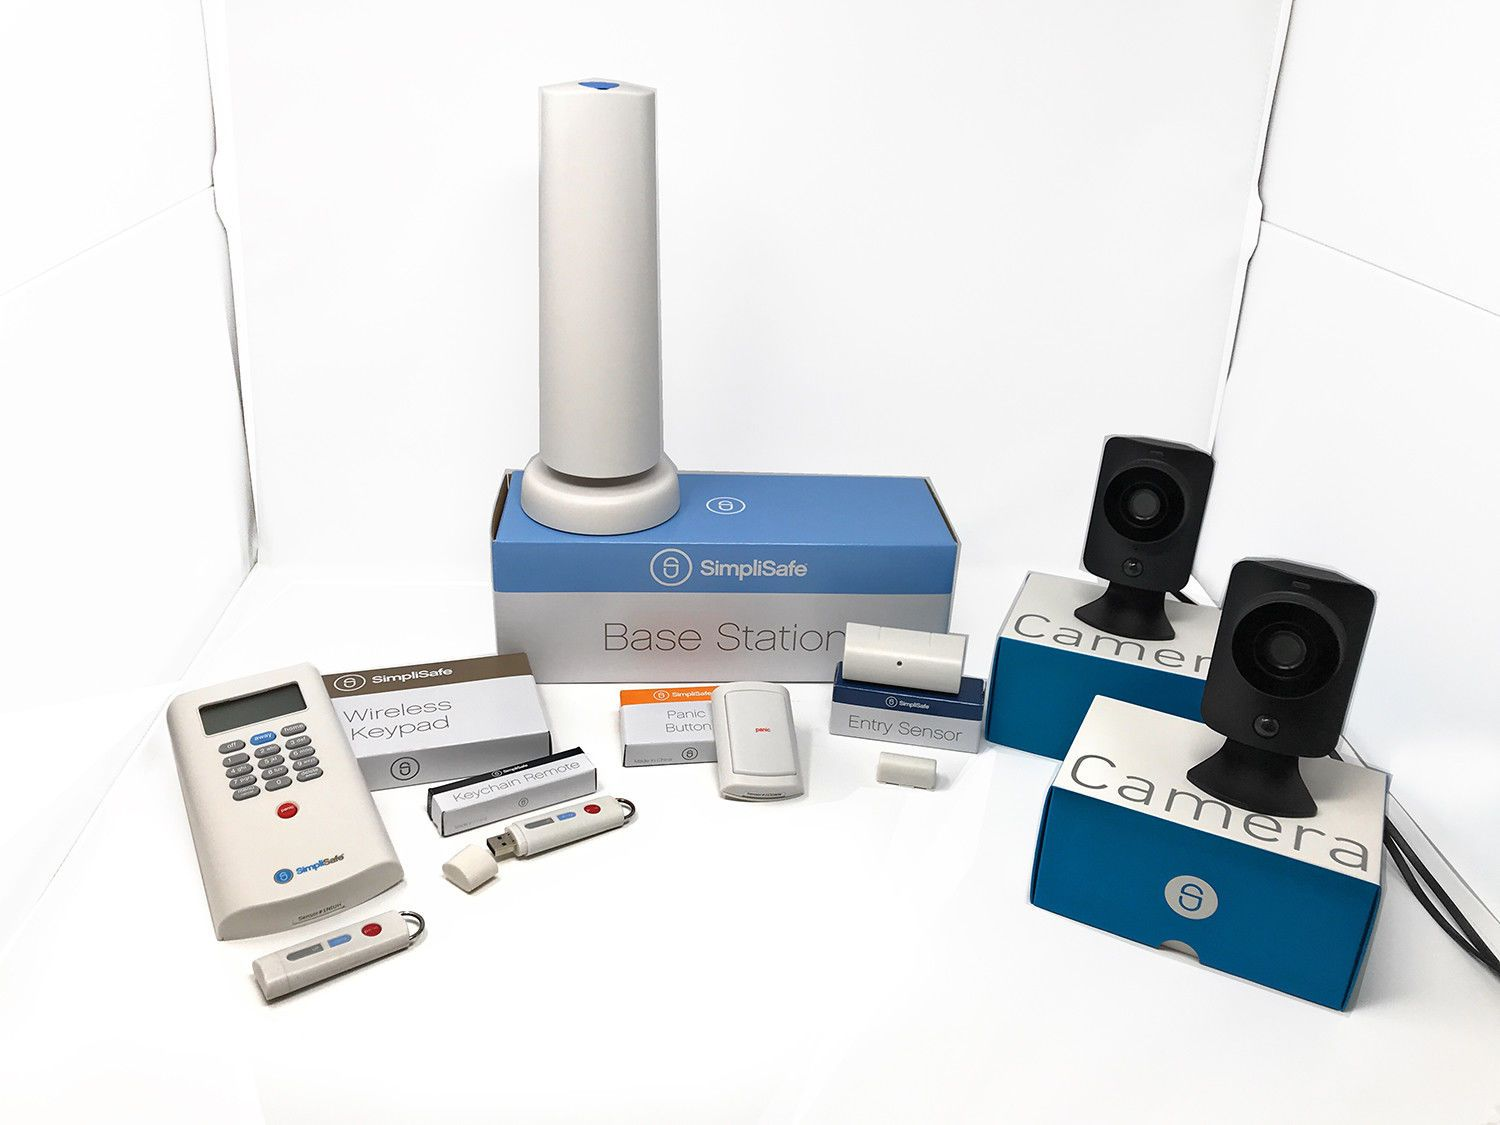 Simplisafe Wireless Home Security System Plus 2 Surveillance Cameras Wireless Home Security Home Security Systems Wireless Home Security Systems